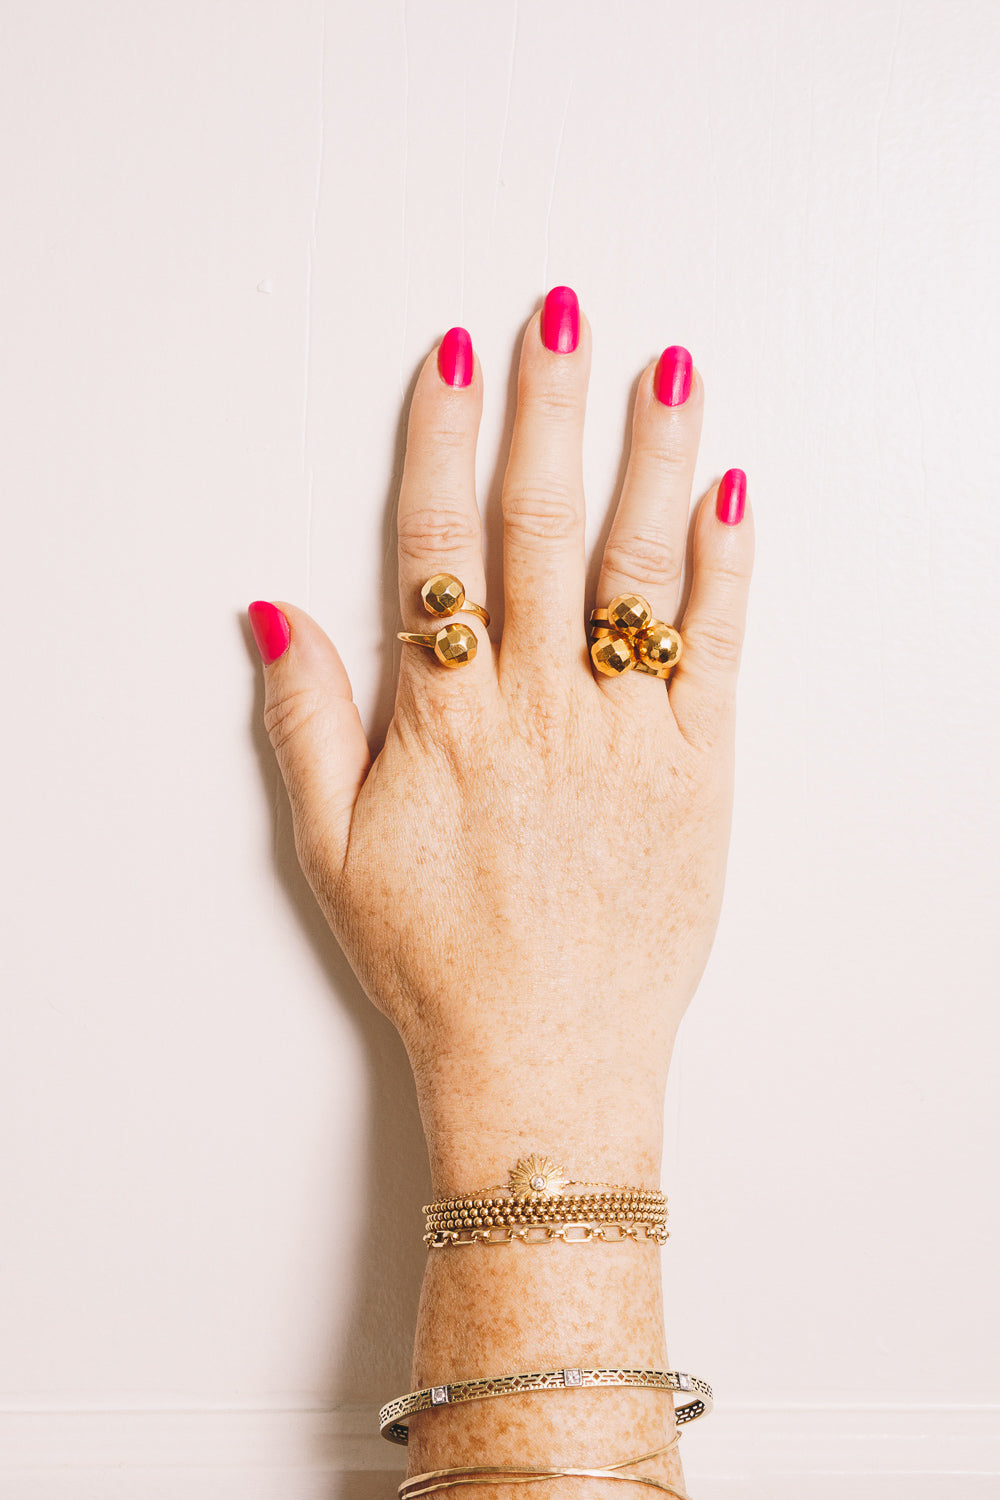 gold disco ball wraparound ring and gold stacking rings on hand